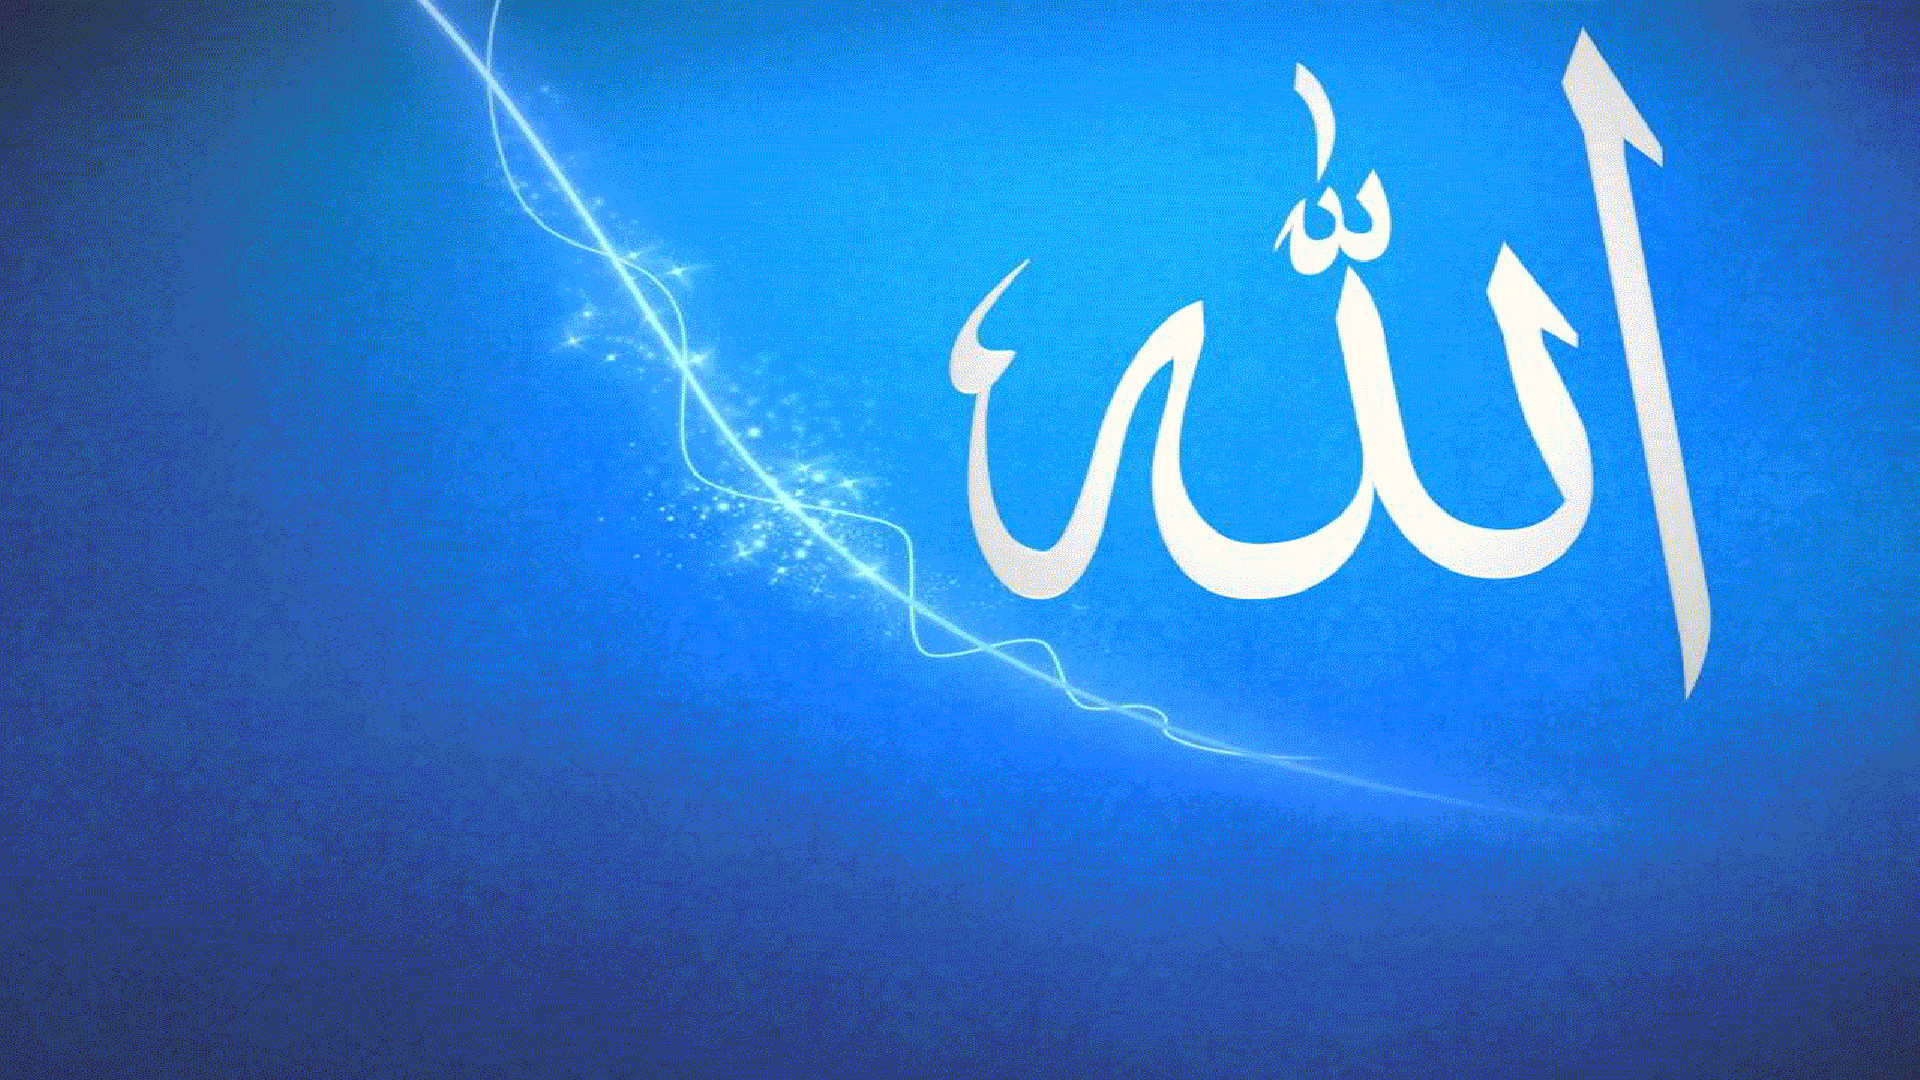 Res: 1920x1080, Islamic Wallpapers HD Pictures Live HD Wallpaper HQ Pictures ... - HD  Wallpapers